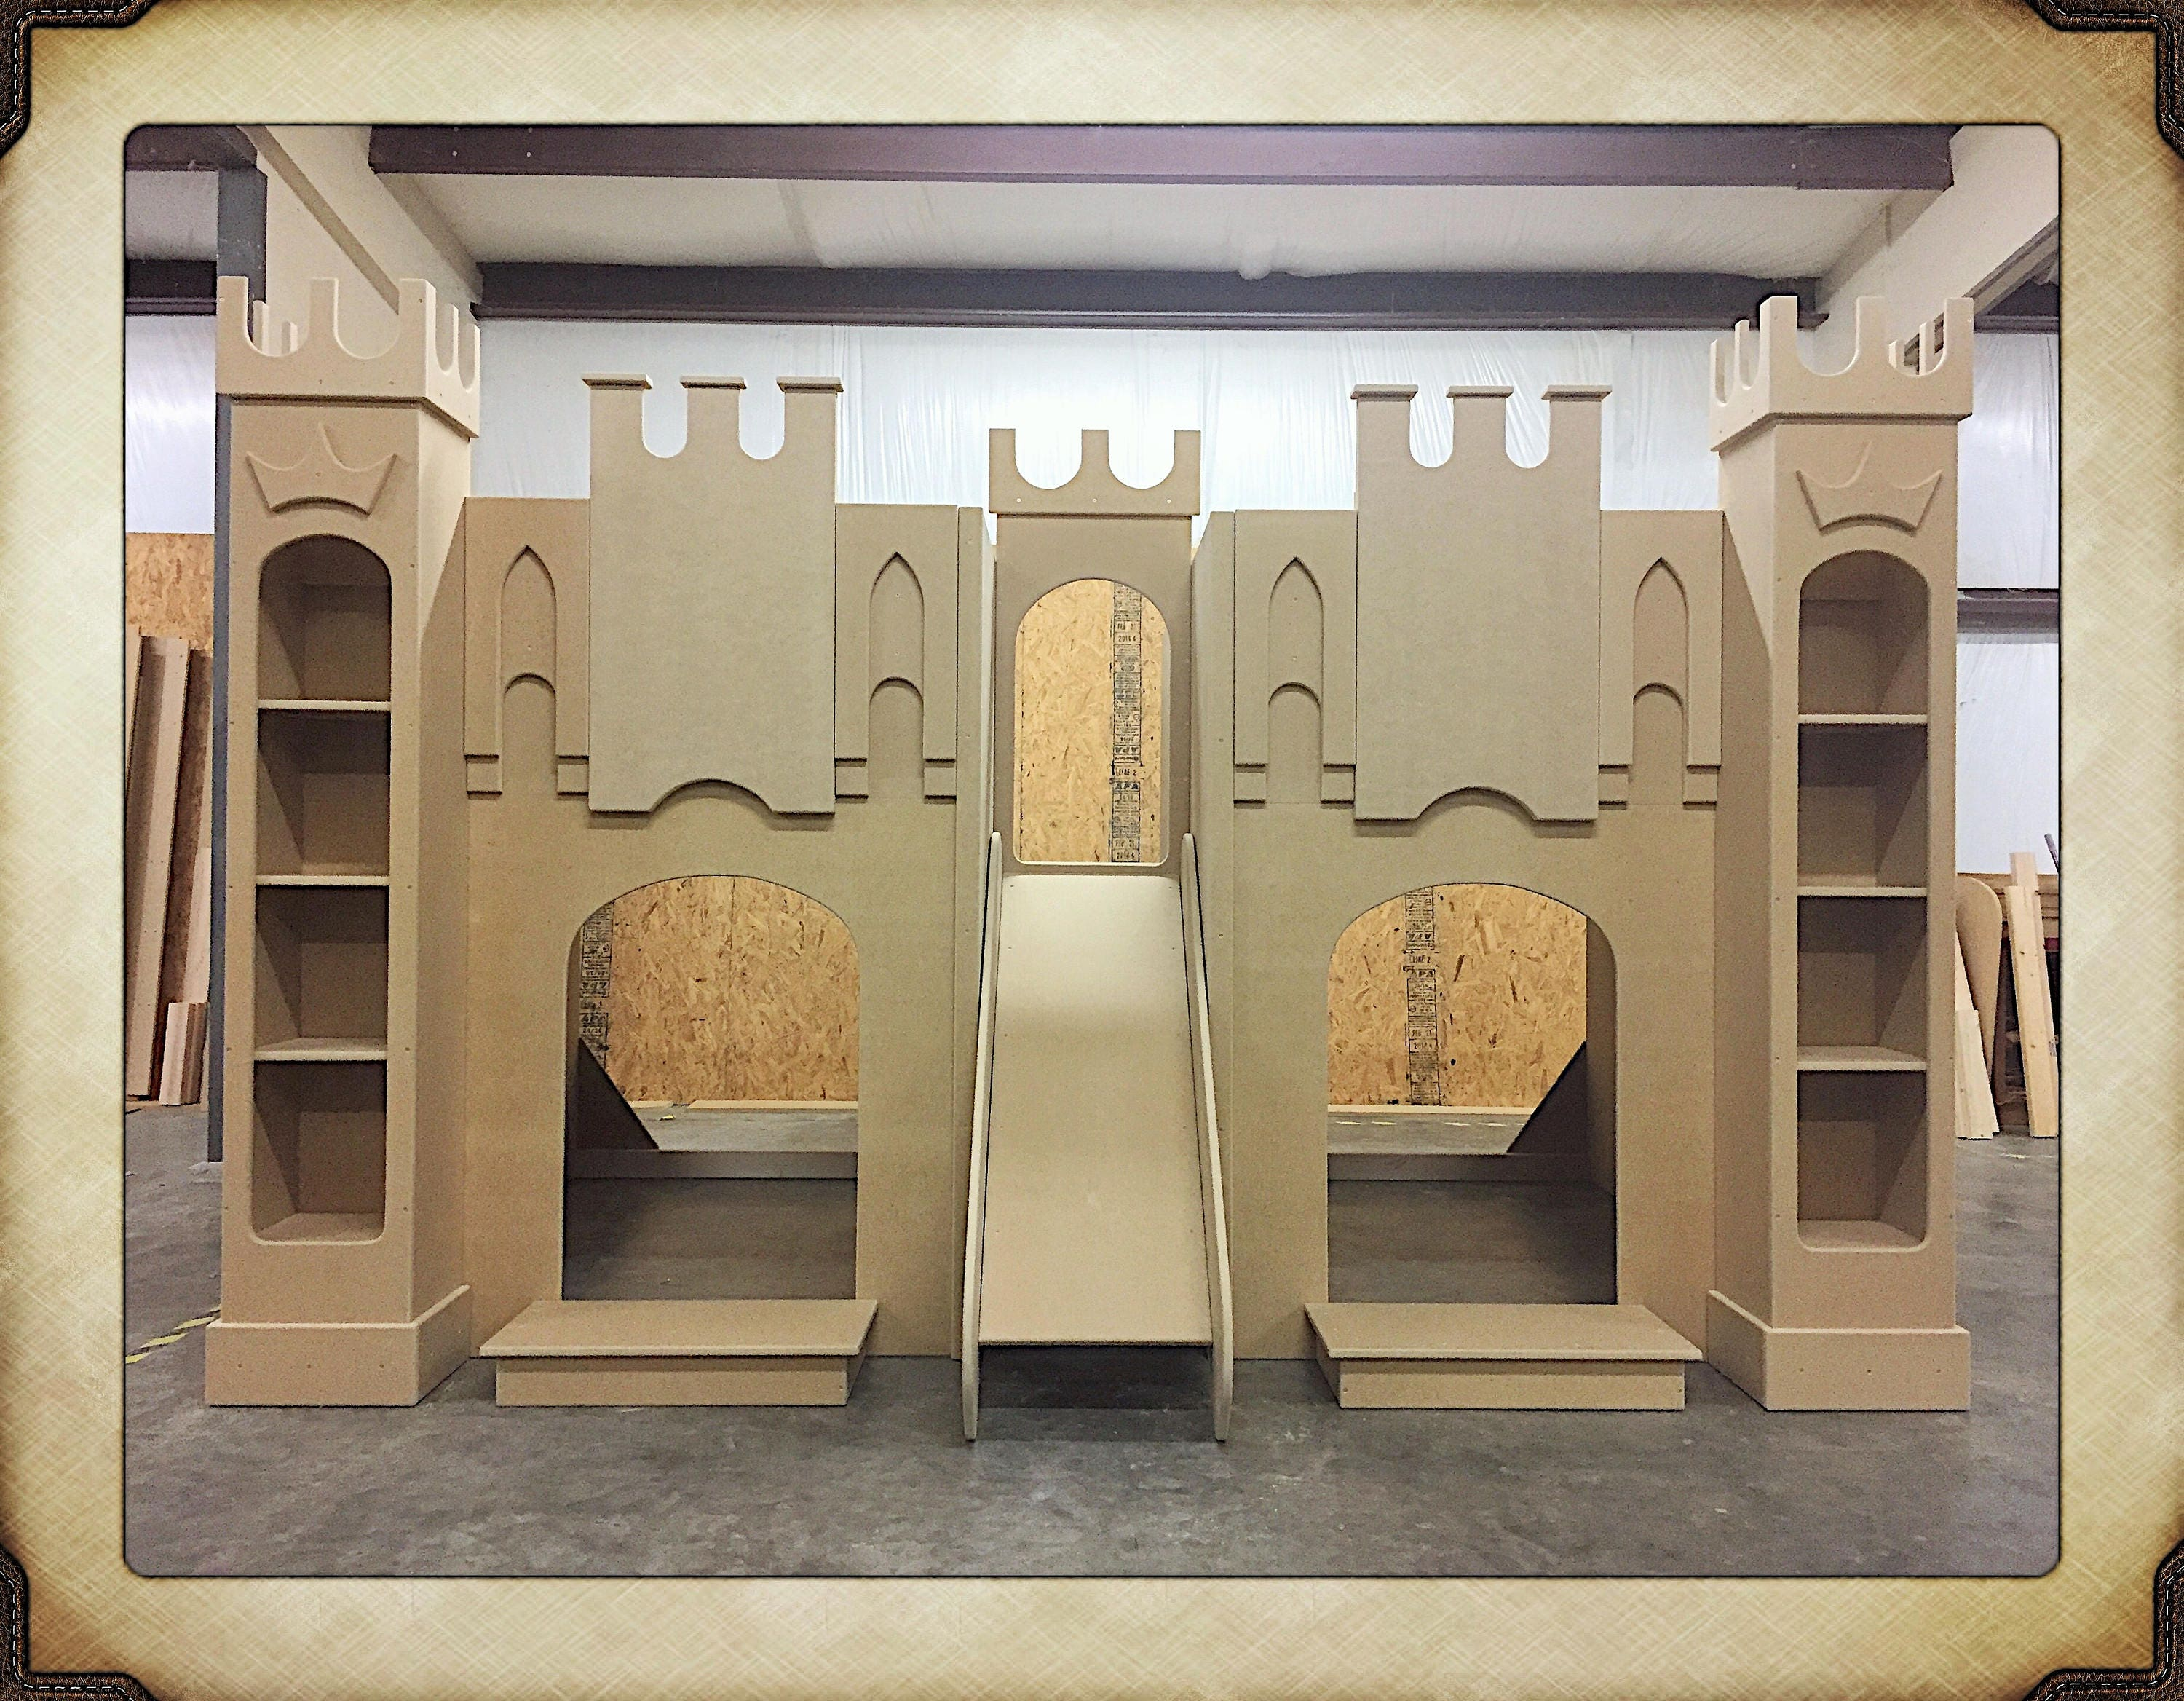 Princess Castle Bed Playhouse Bunk Bed Castle Bed Theme Etsy